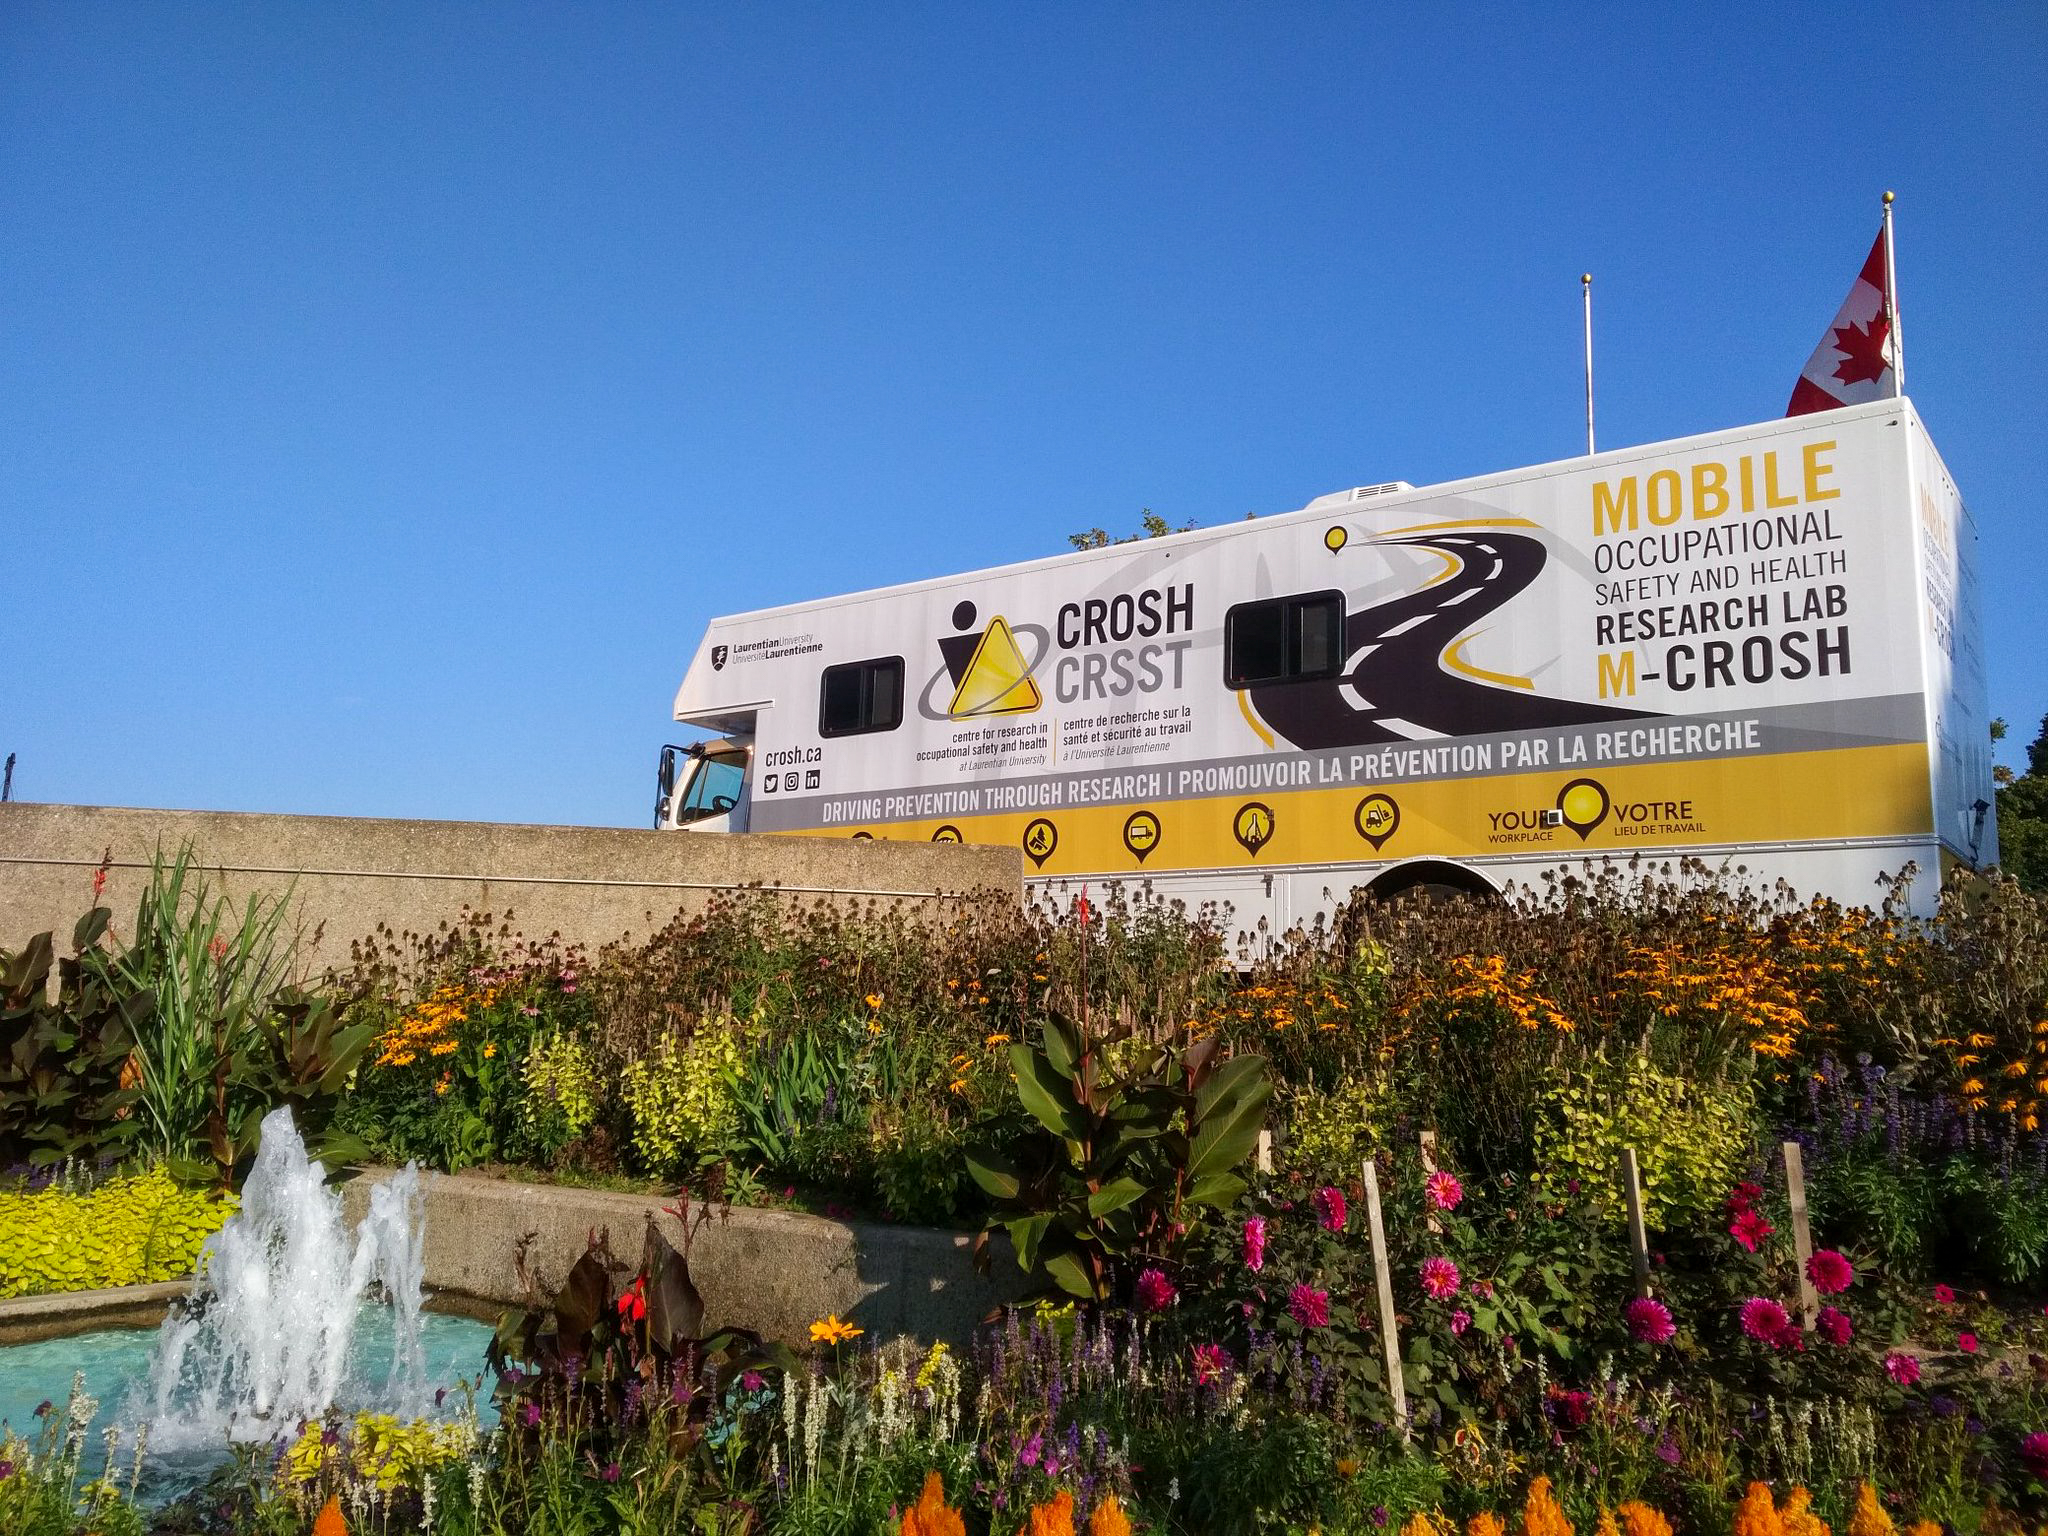 The mobile research lab (M-CROSH) parked next to a garden